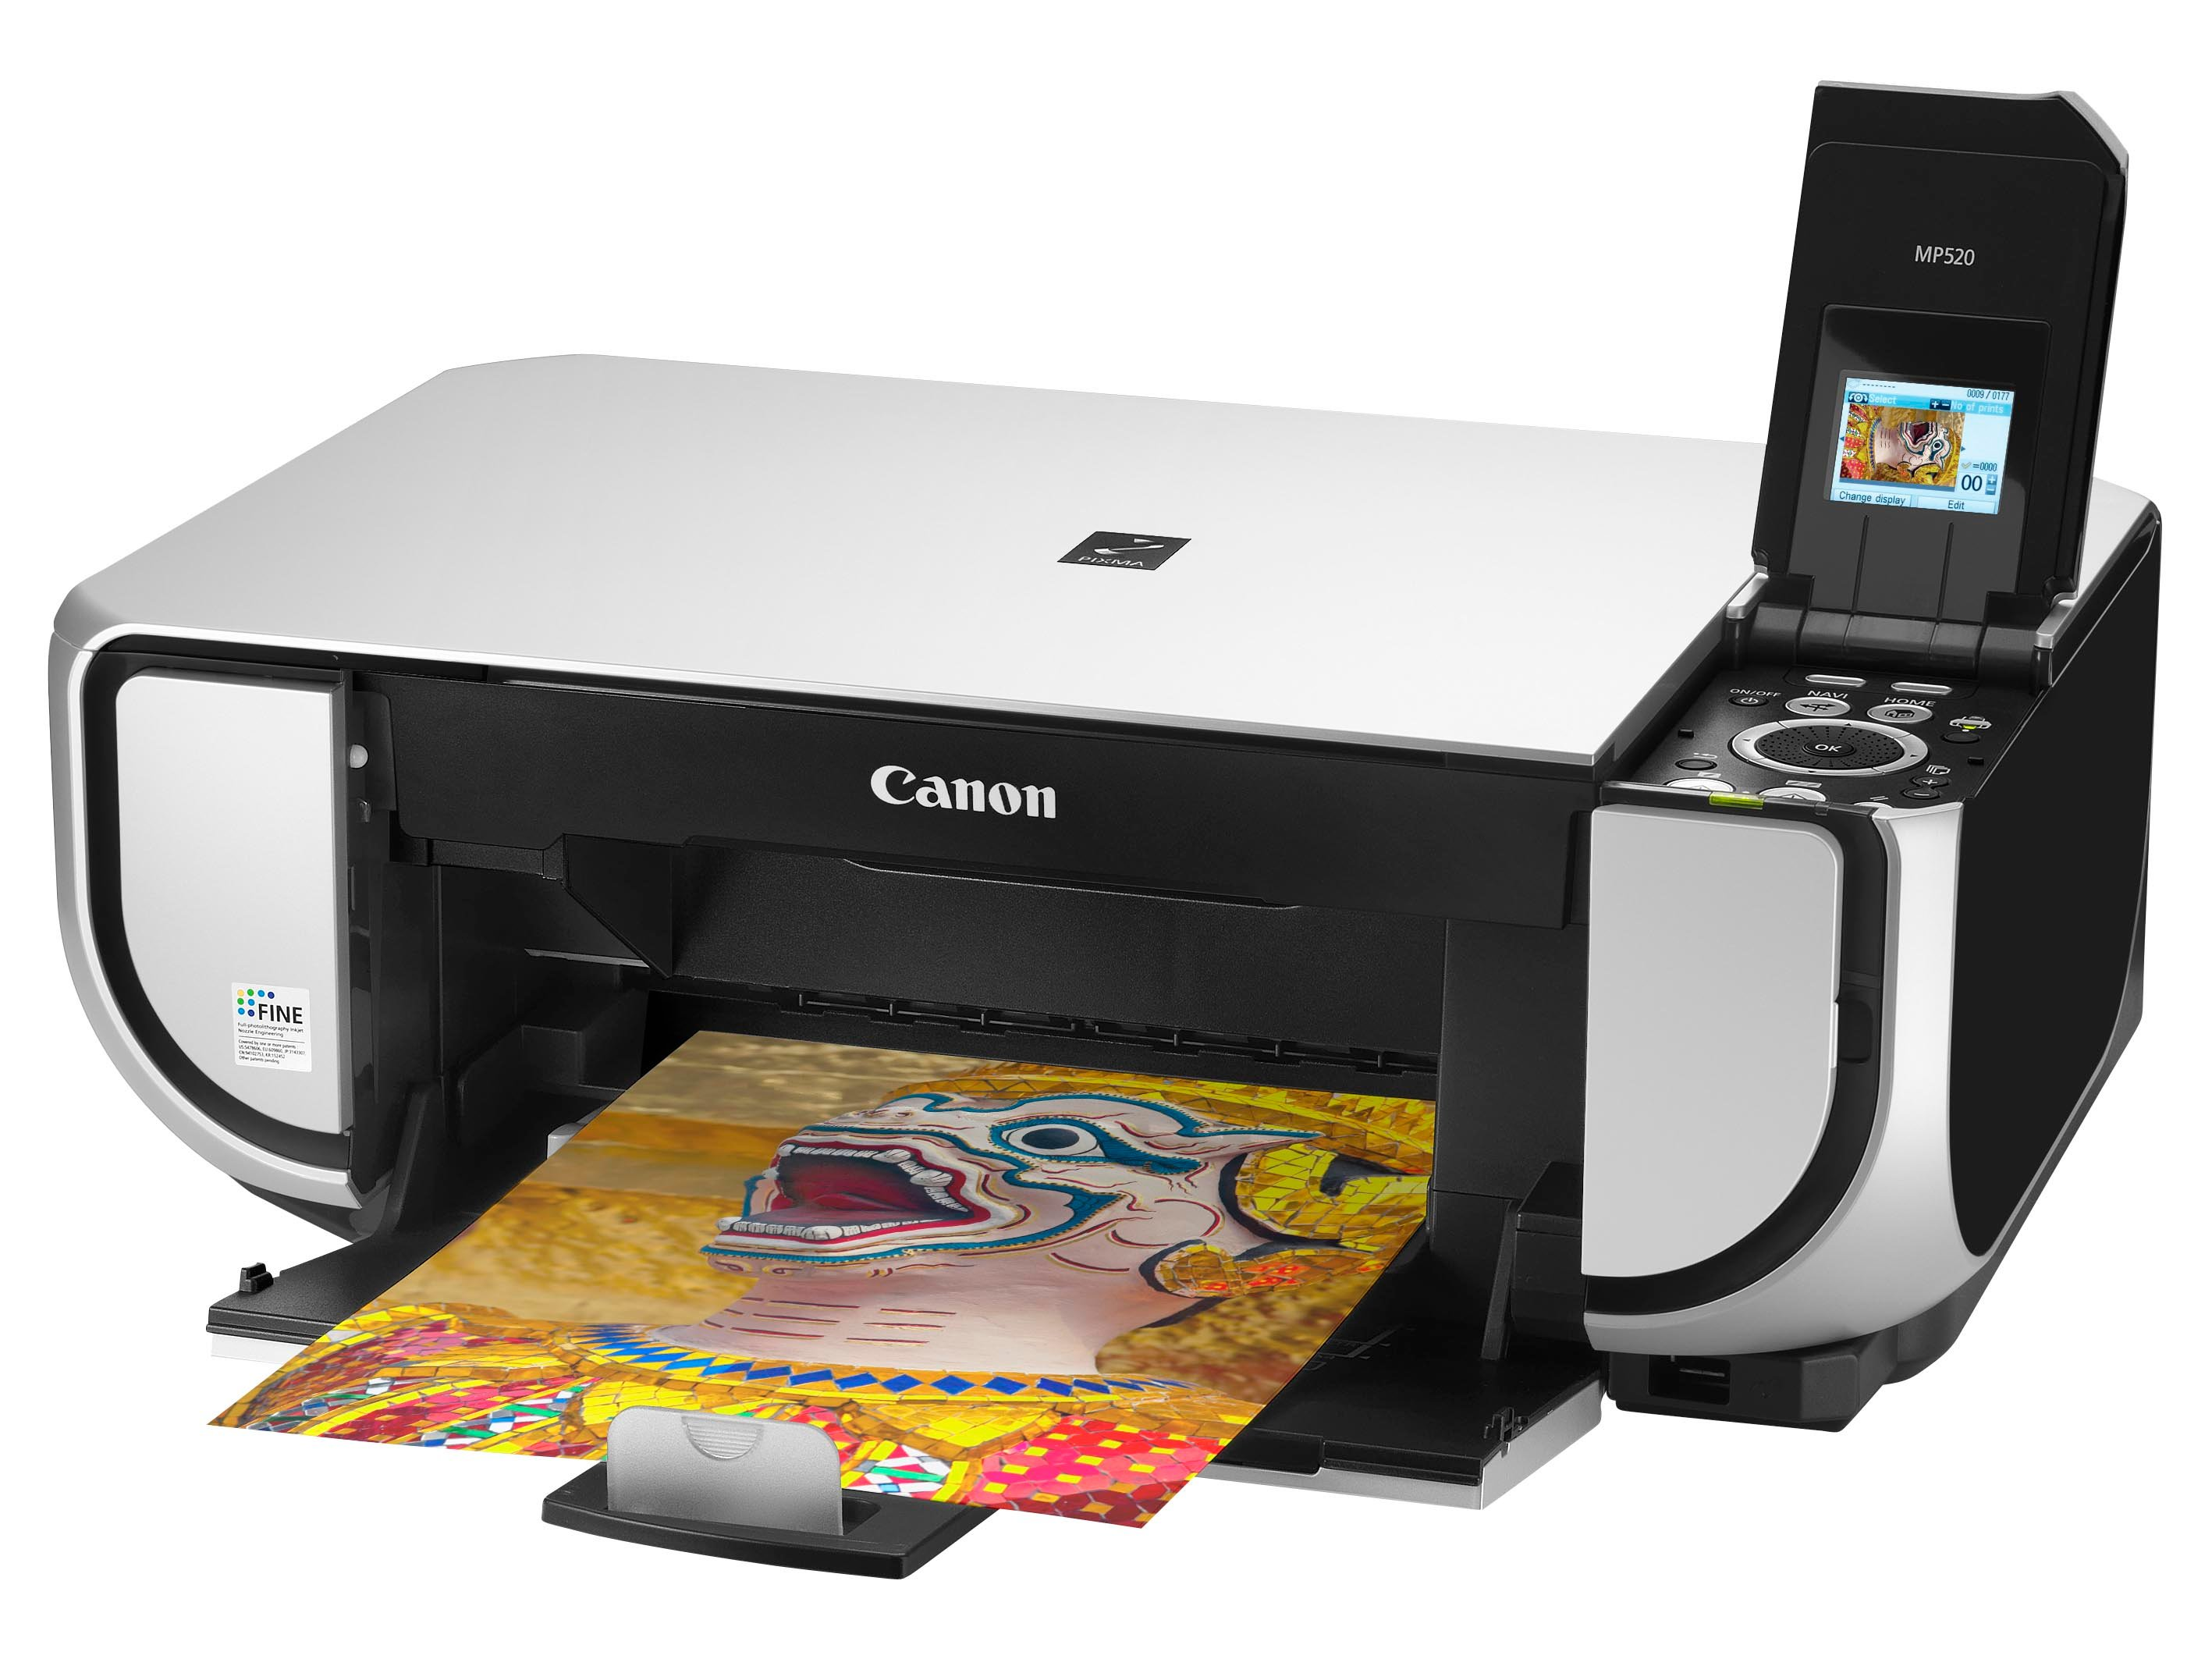 Canon Pixma MP520 Ink Cartridges